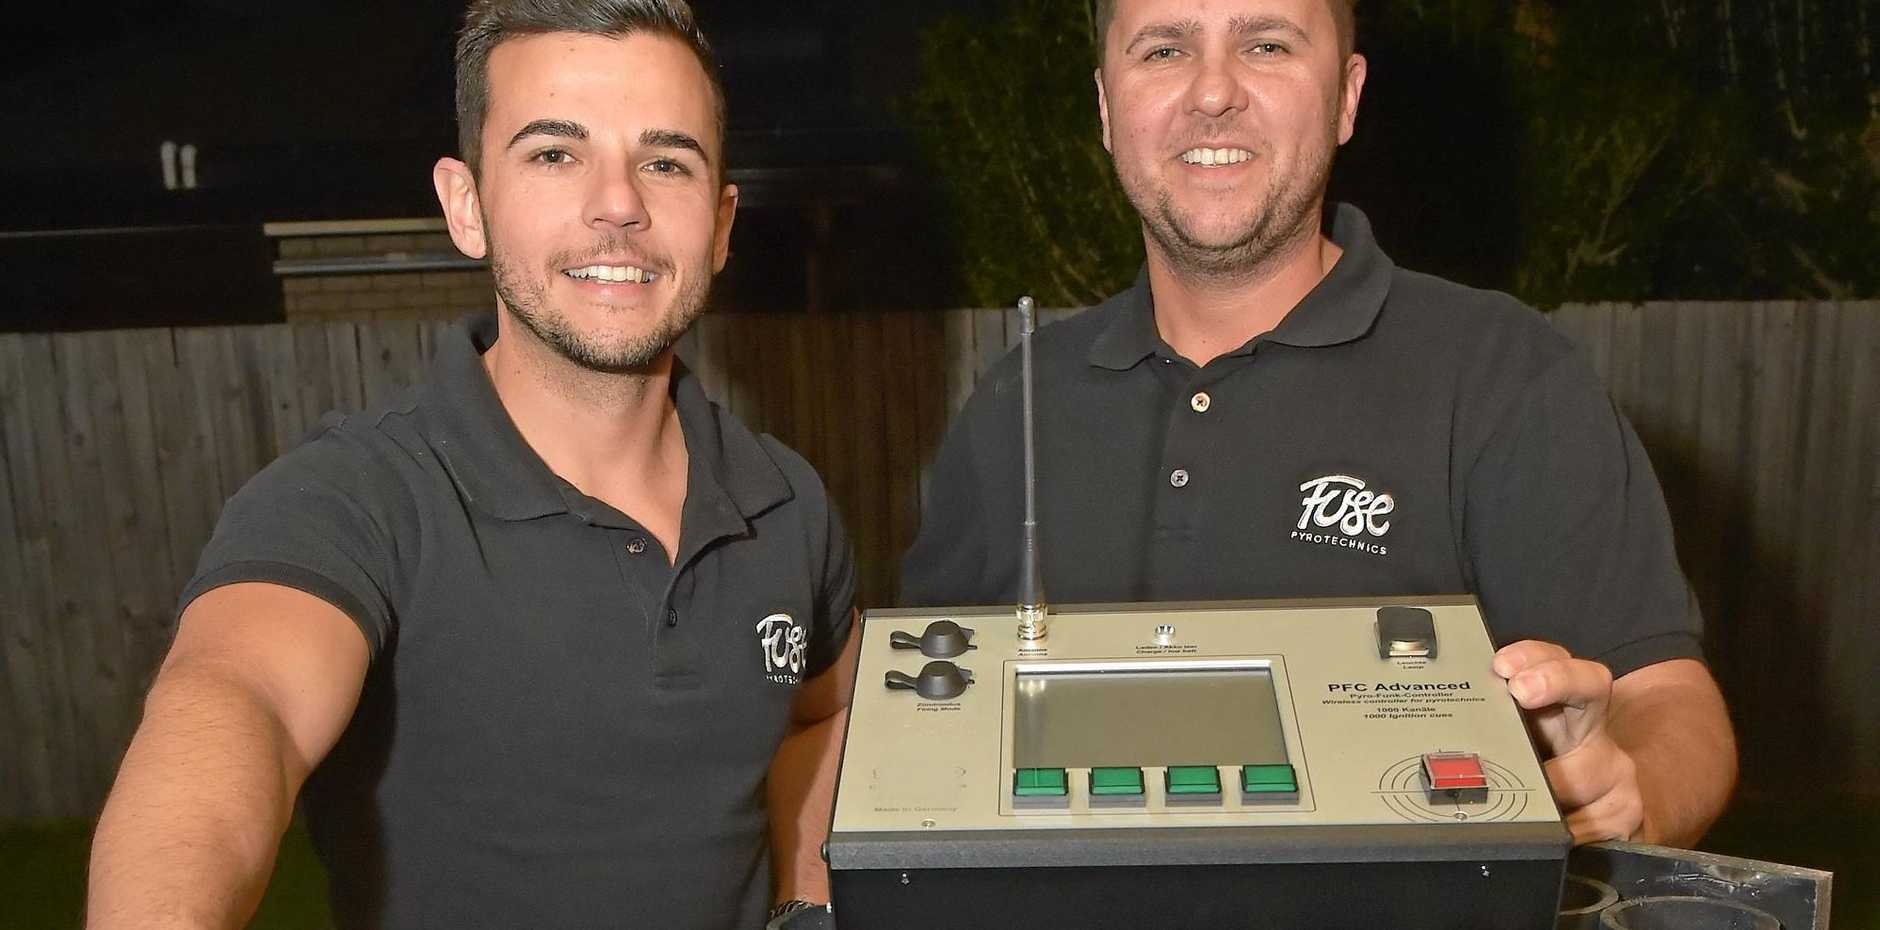 EXPLOSIVE COMPANY: Mark and Michael Della Sabina have started Fuse Pyrotechnics, the Sunshine Coast's newest fireworks company, together.